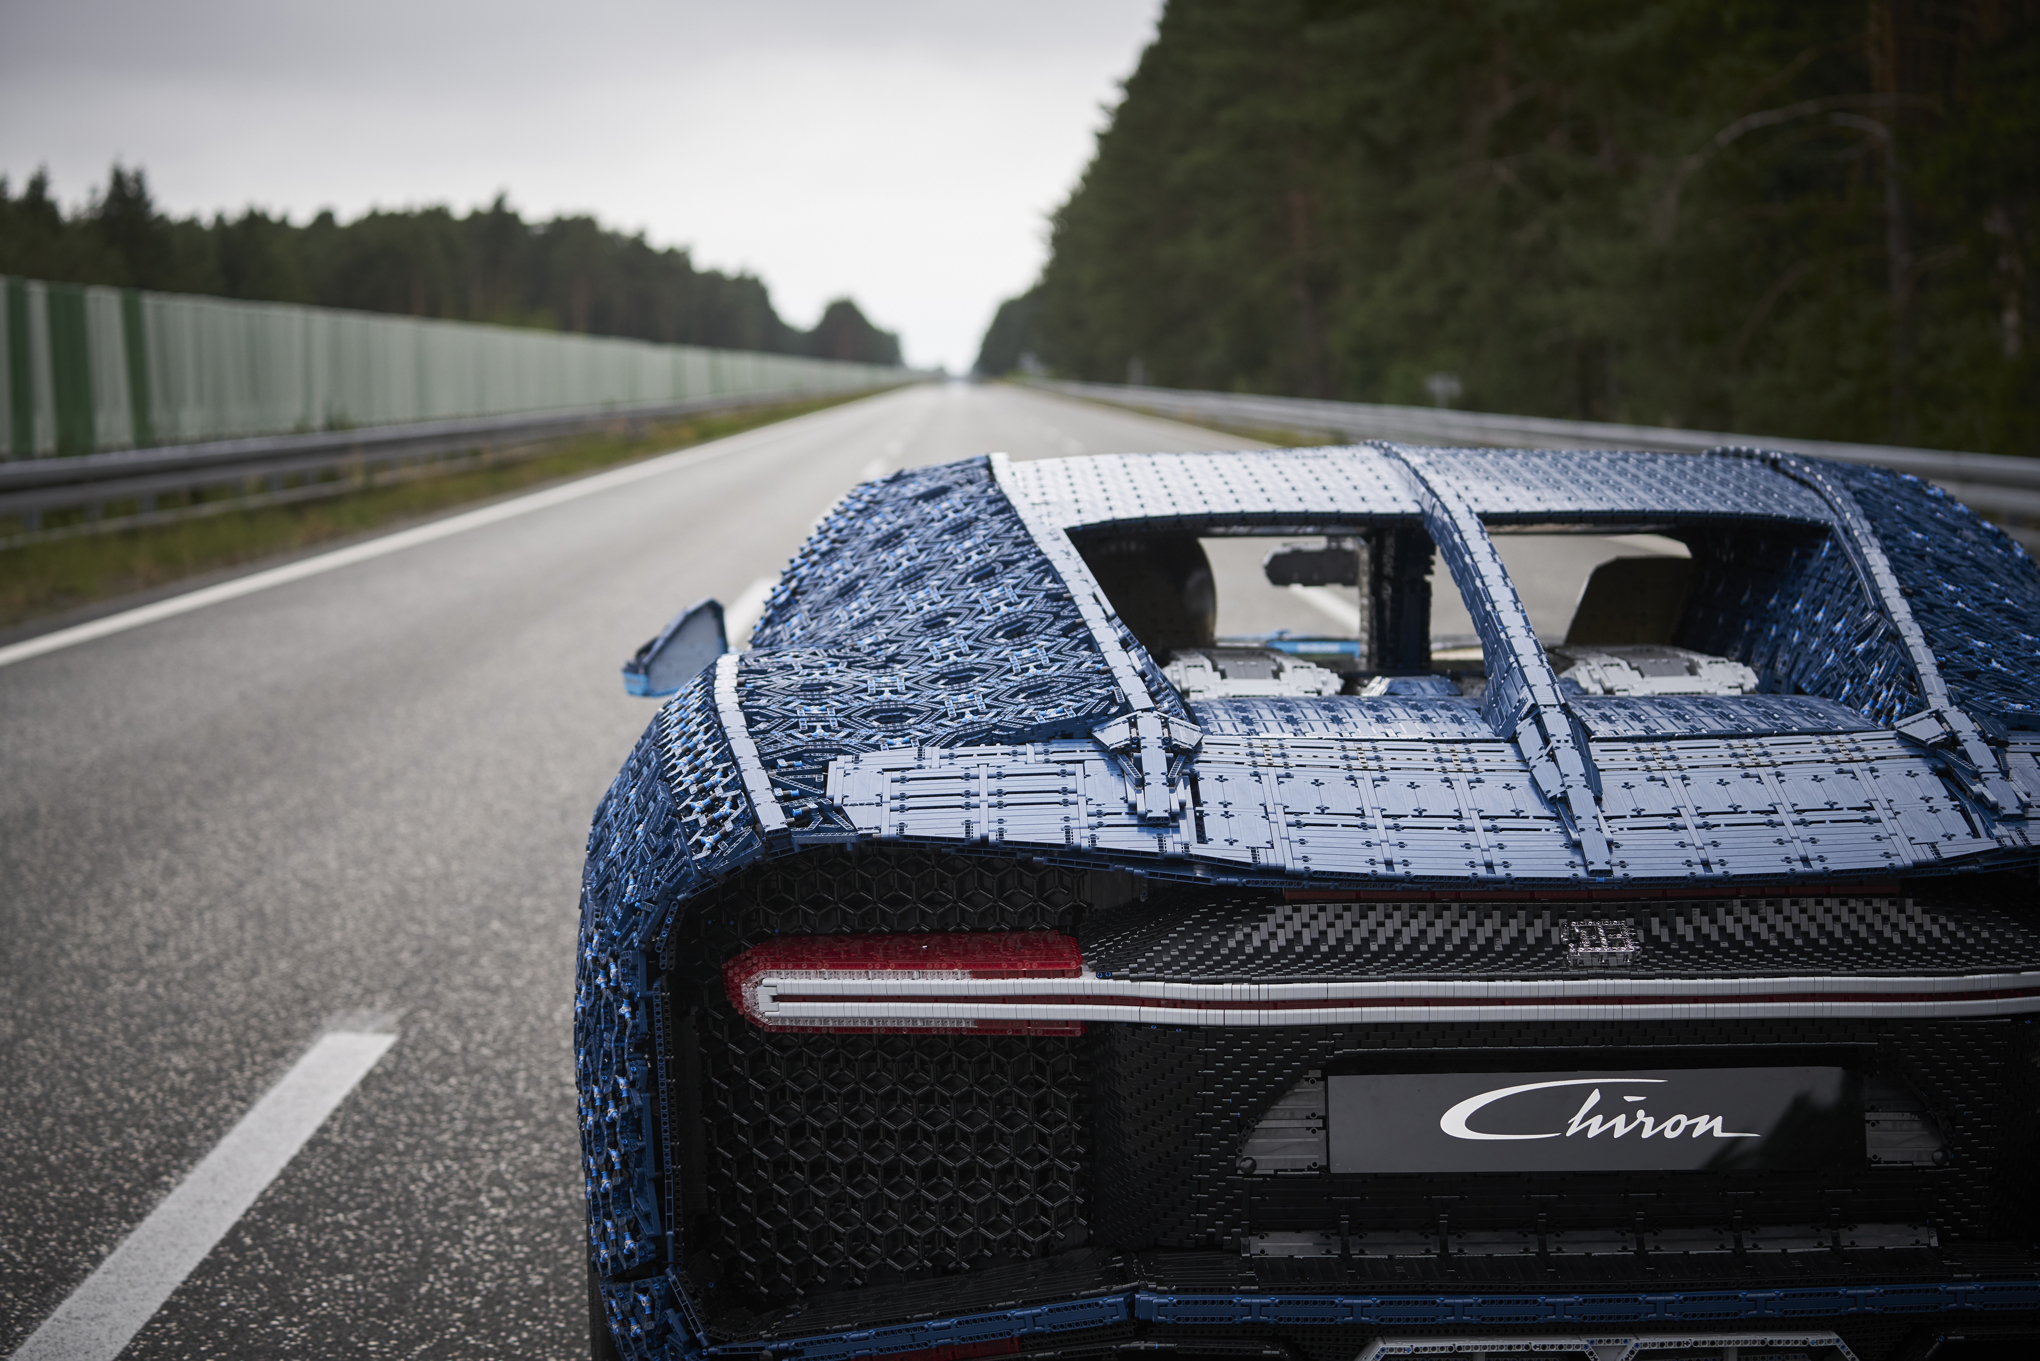 Lego Built A Drivable Bugatti Chiron With Over 1 Million Pieces